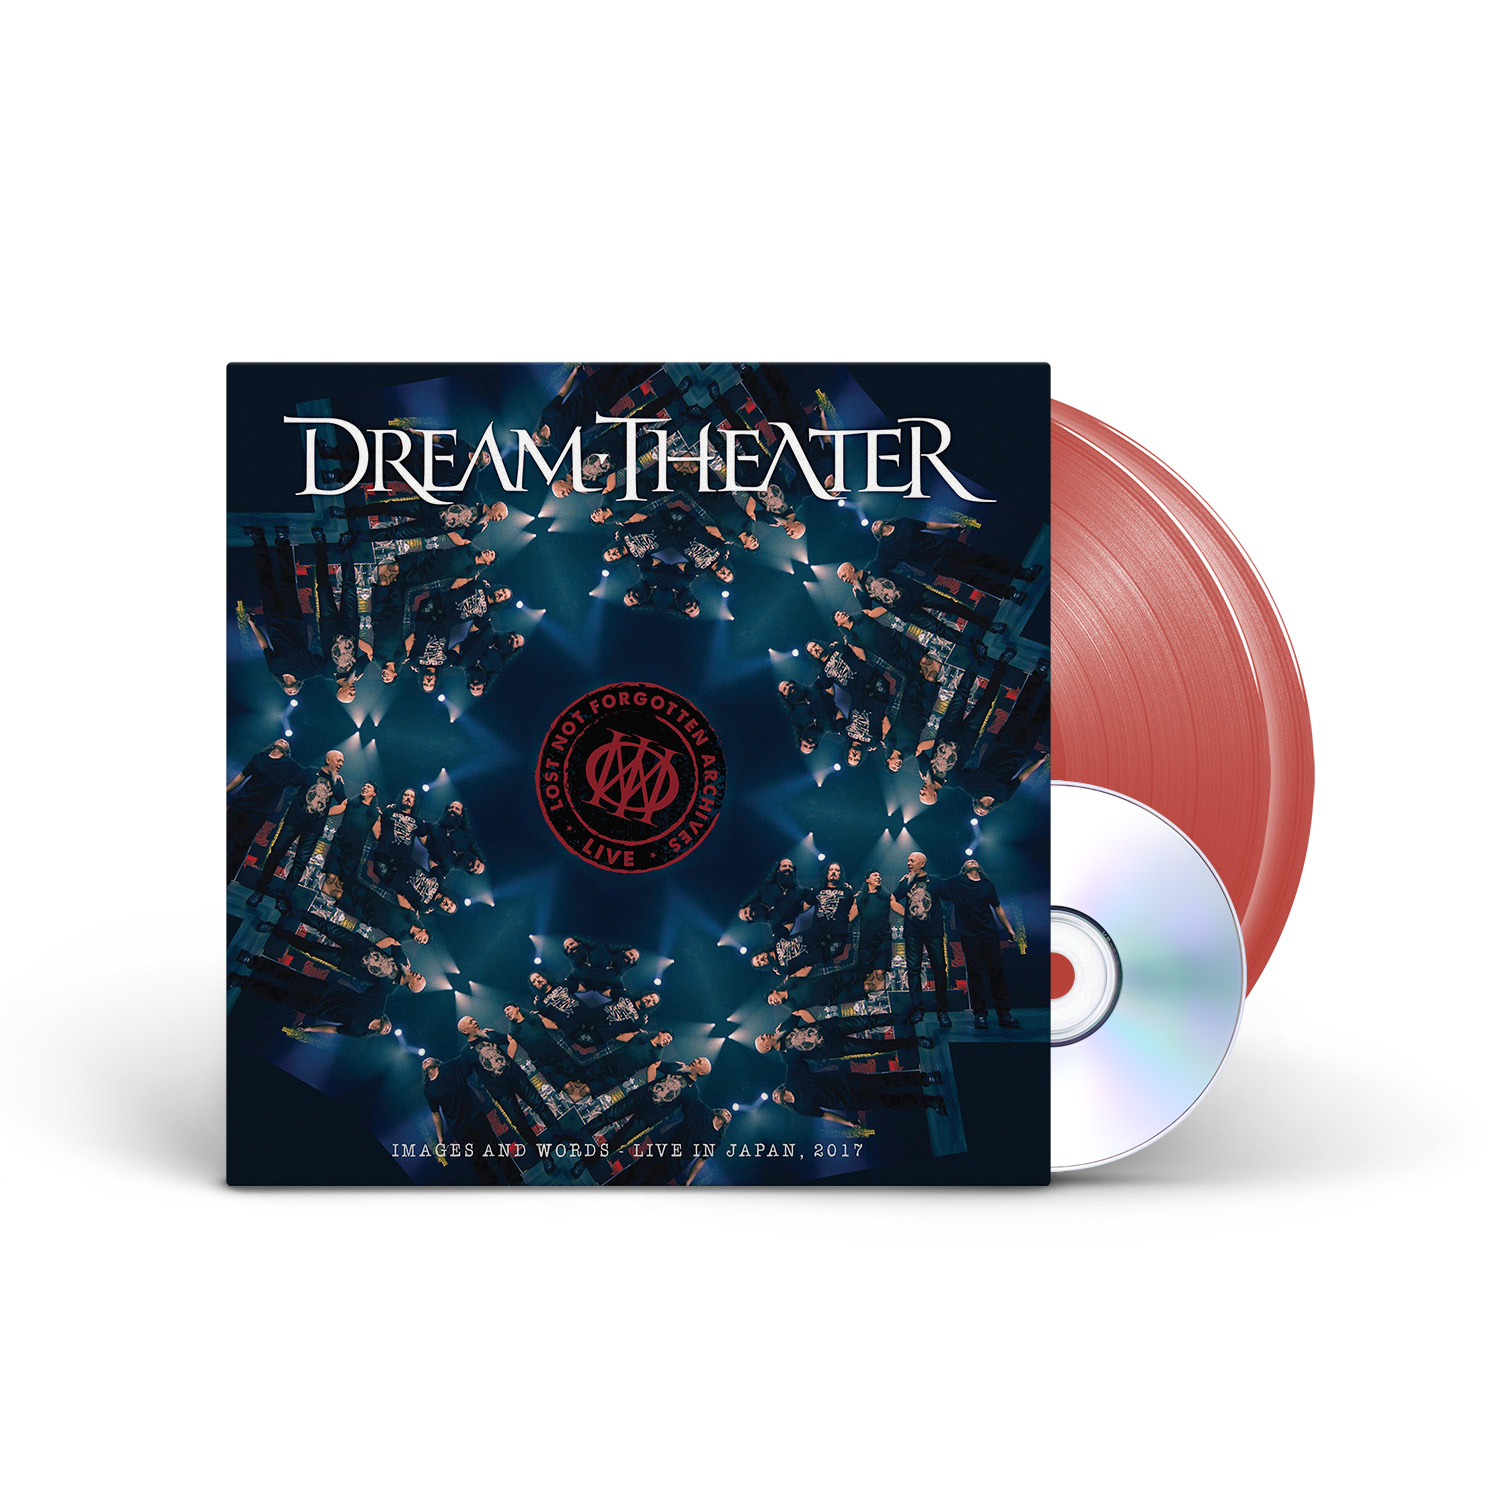 Dream Theater - Lost Not Forgotten Archives: Images and Words - Live in Japan, 2017 Ruby 2LP + CD + Digital Download